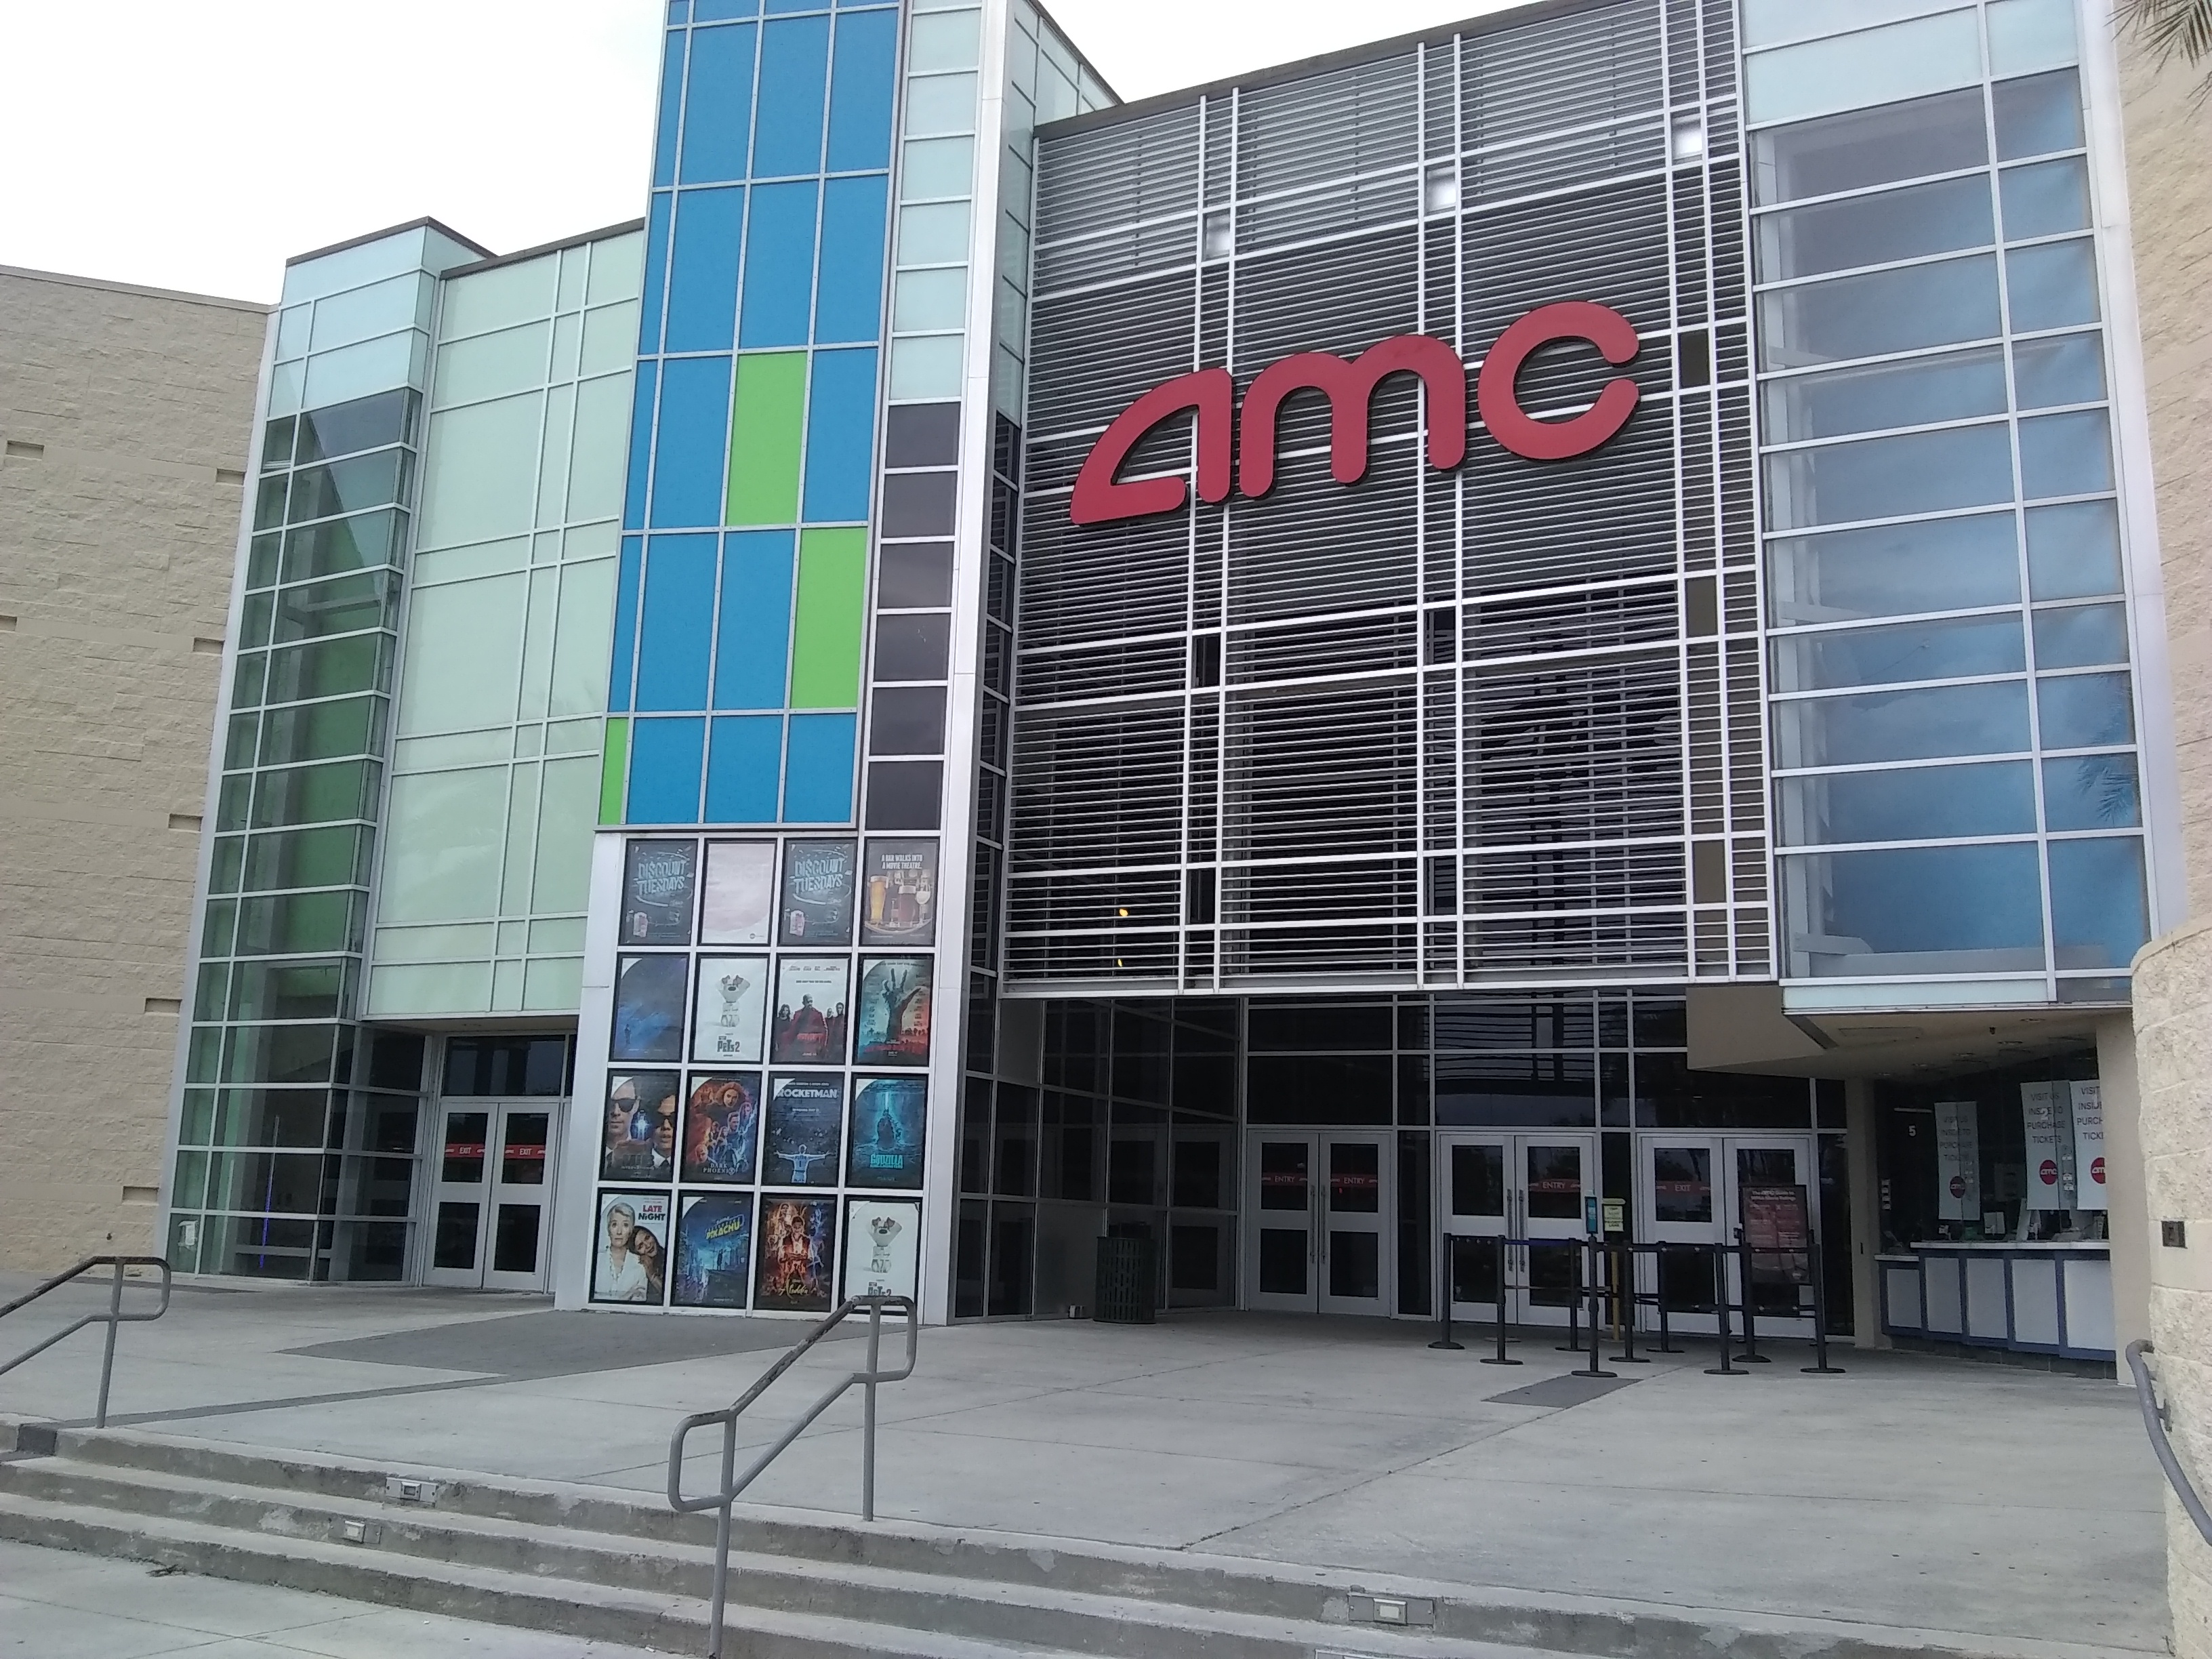 Port St Lucie AMC